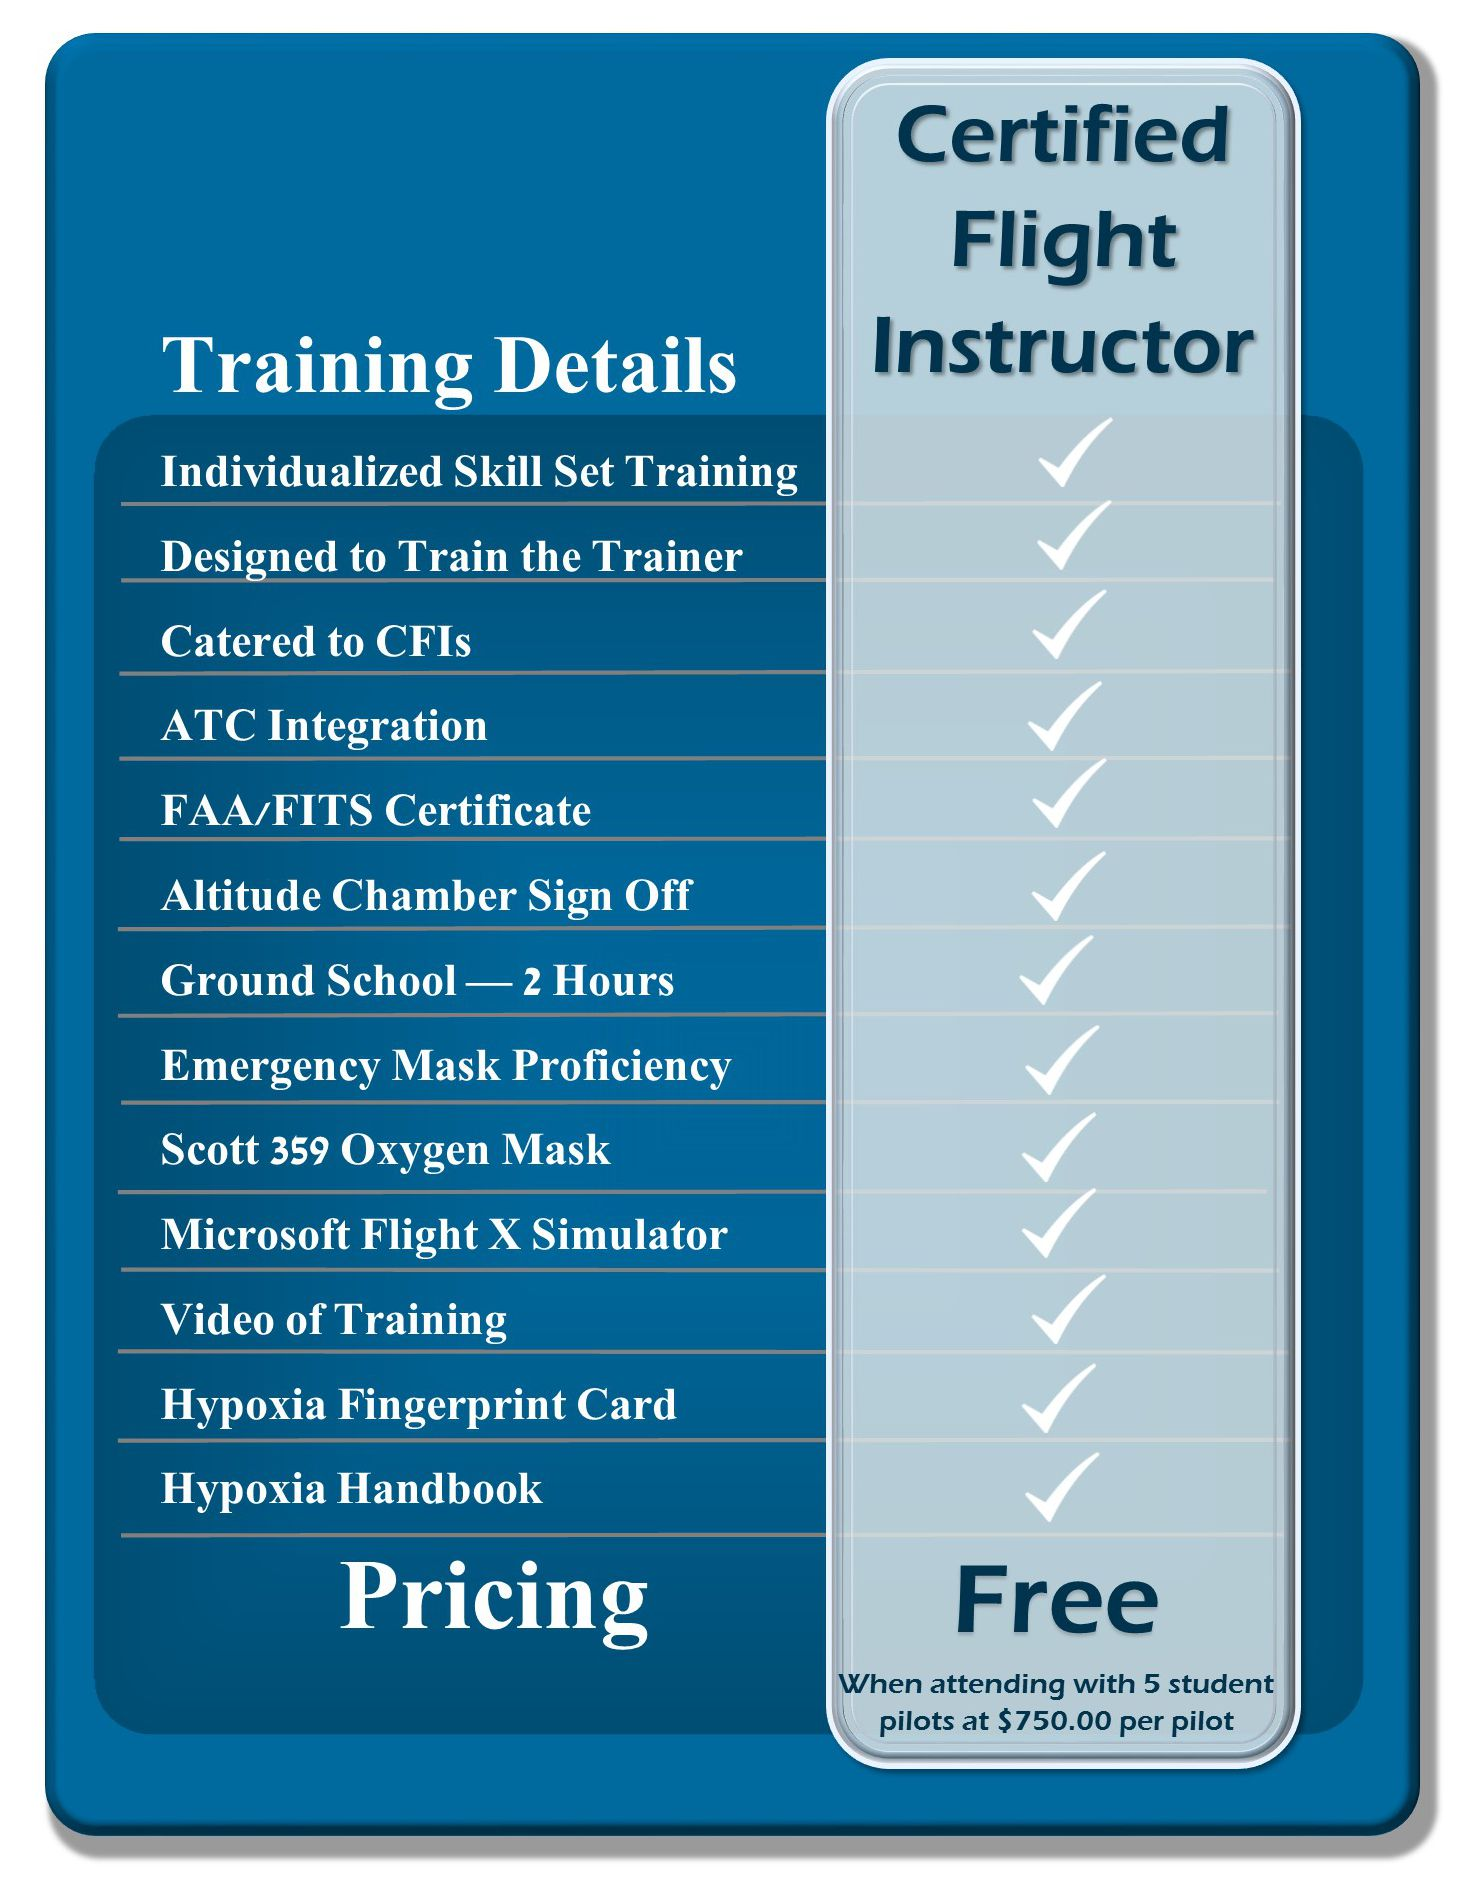 CFI Pricing Graphic